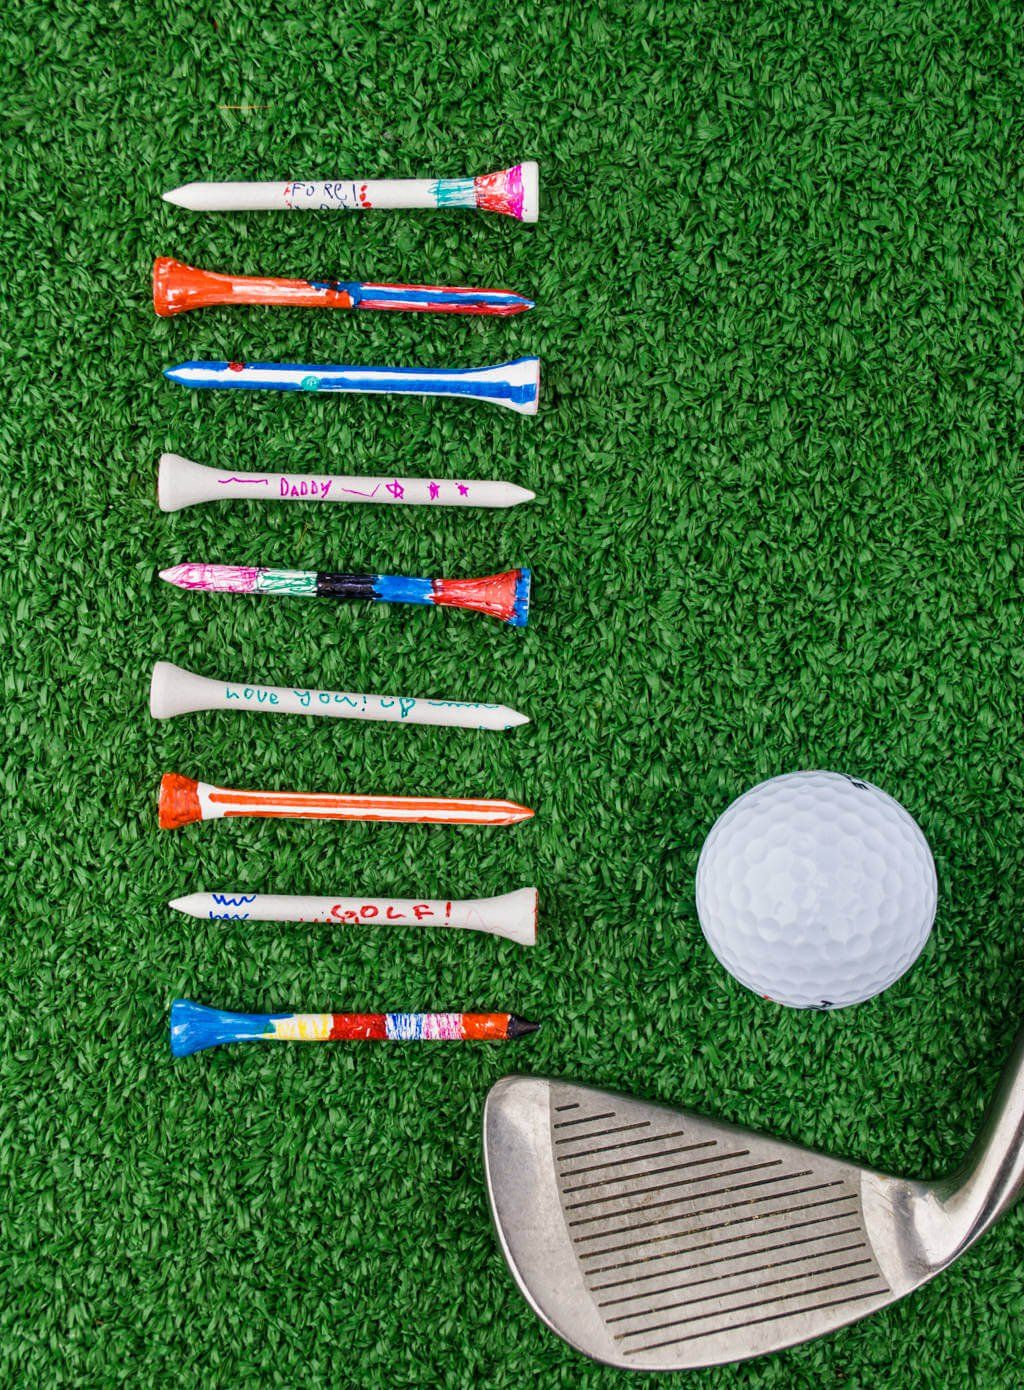 DIY Father's Day Gifts from Kids Sharpie Golf Tees is part of DIY Kids Crafts For Dad - Make this DIY Father's Day gifts from kids colorful DIY painted golf tees with cute stripes, doodles and smiles  It's a quick and easy kid's craft